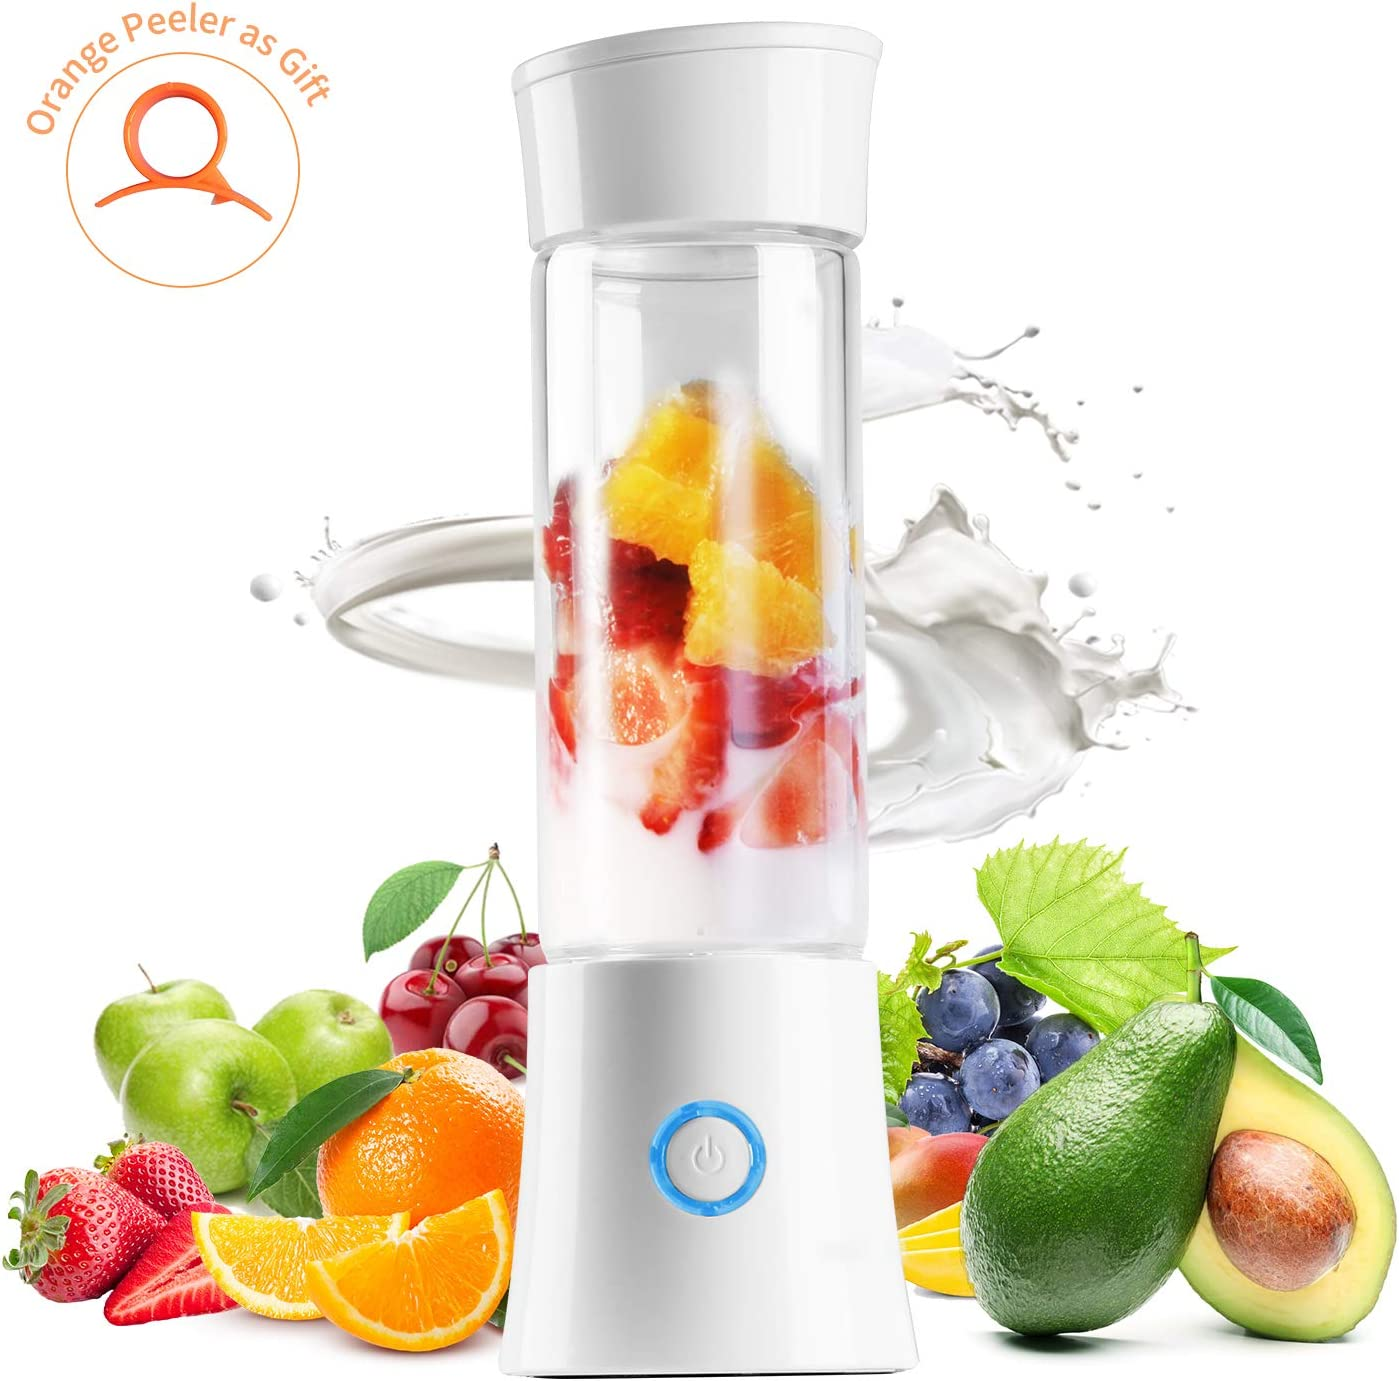 Yeaky Portable Blender, Powerful Personal Blender for Smoothie and Shakes, 16oz Juicer Cup with Detachable Base, Mini Blender Jet USB Rechargeable with Glass Bottle for Baby Food, Home Outdoor Office and Travel (white)